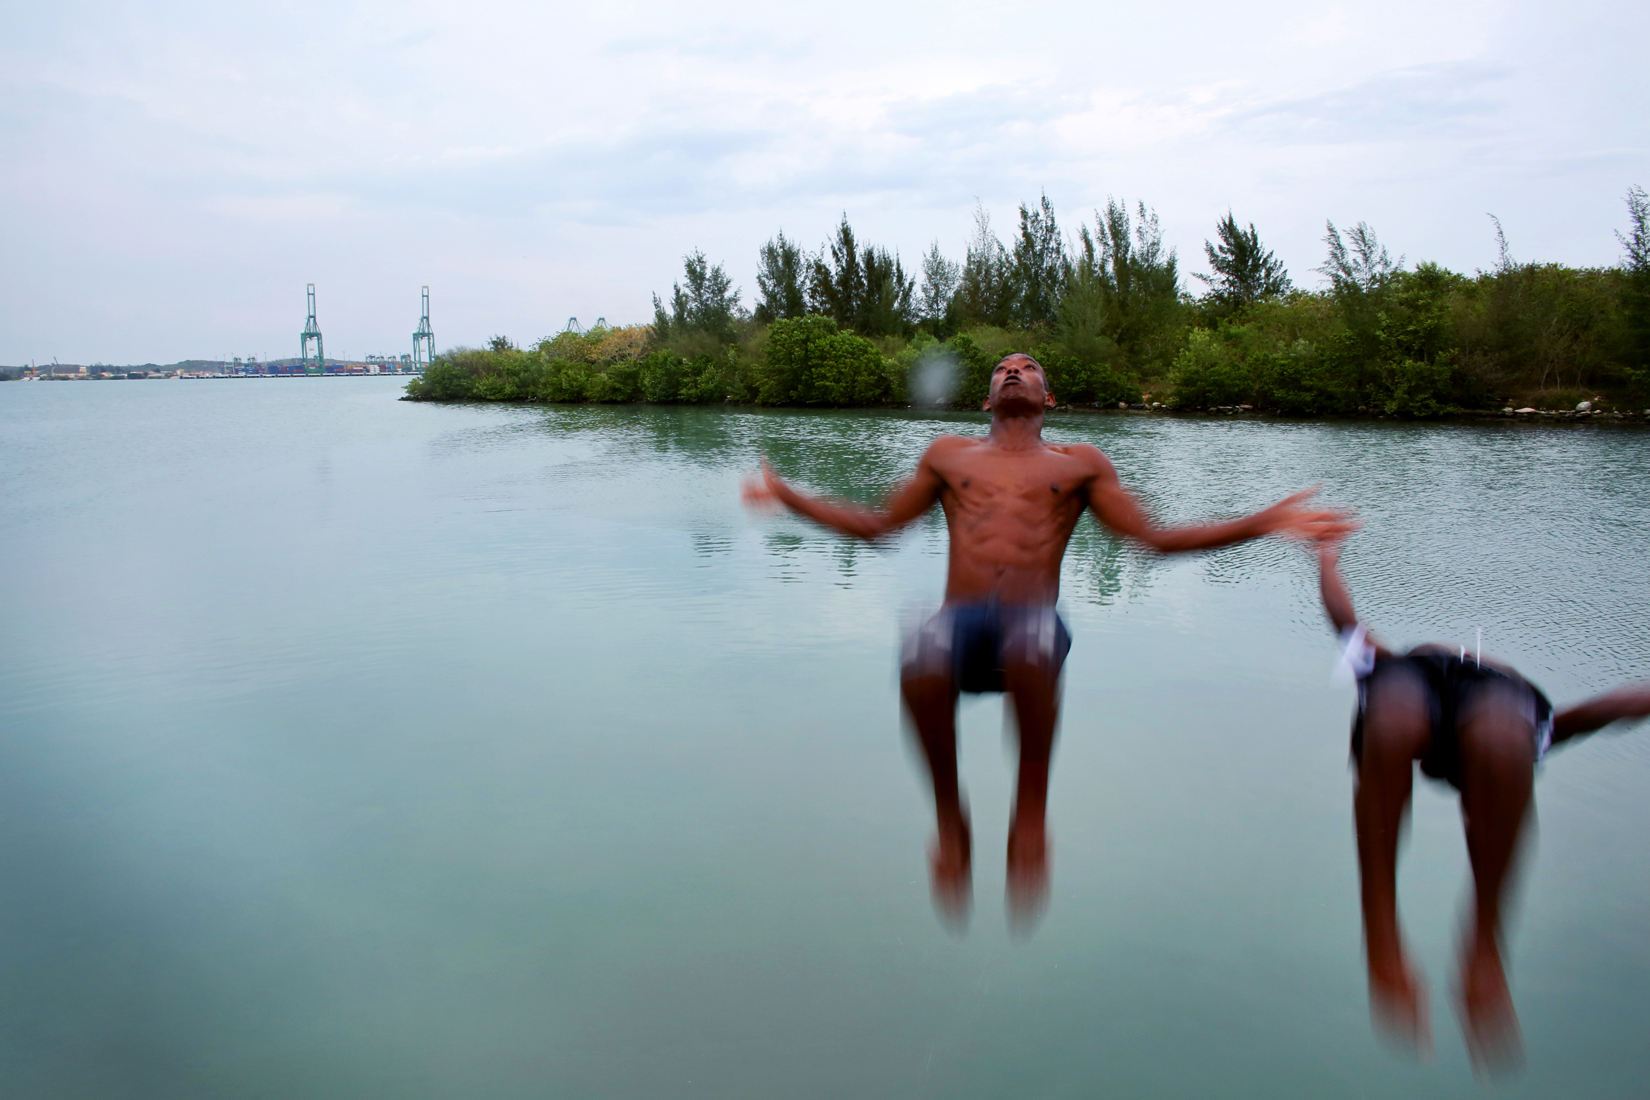 (L-R) Yandi Corrioso Samoraz, 22, and Raymel Medina, 16, go for an evening dip in the water, with construction of the new port visible in the background, in Mariel, Cuba. Raymel says he'd like to learn more about the world, but extremely limited internet access in his city, and in the country in general, makes this a challenge. (Internet access is either difficult to find, or prohibitively expensive.) Mariel's tranquil appearance belies its important place in both the history and future of Cuban-American interaction. It is where Russians unloaded nuclear warheads in the 1962 Cuban missile crisis, and the gateway through which 125,000 Miami-bound emigres fled during the Mariel Boatlift of 1980. The town is now the site of construction of a deepwater container port and a free-trade zone, a critical ingredient for which will be the future of the U.S. embargo against Cuba, in place for more than 50 years but now under speculation of being lifted.